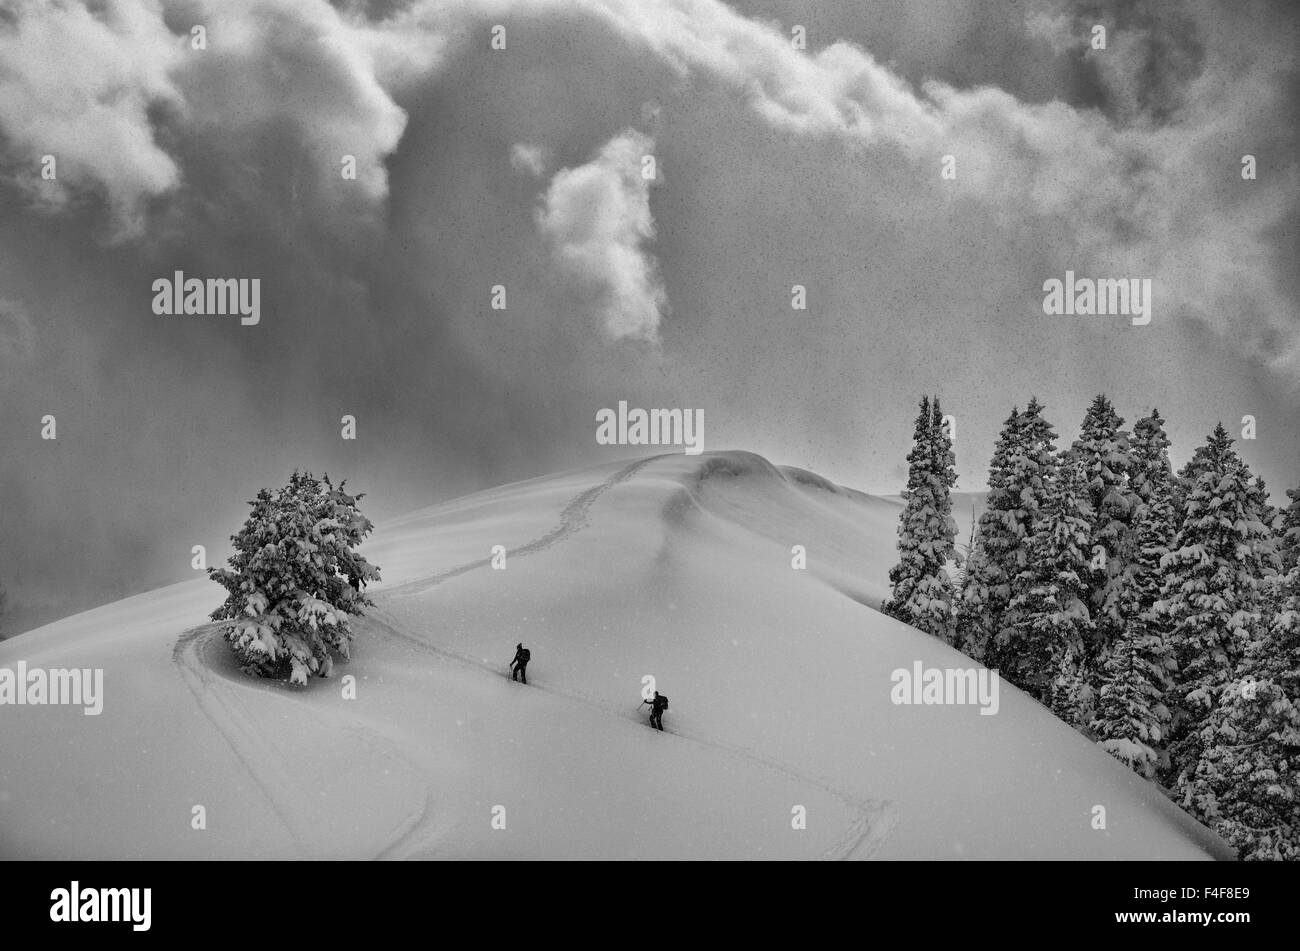 Backcountry Ski Climbers in fresh powder, view near Beartrap-Desolation Ridge, Big Cottonwood Canyon, Uinta Wasatch Stock Photo